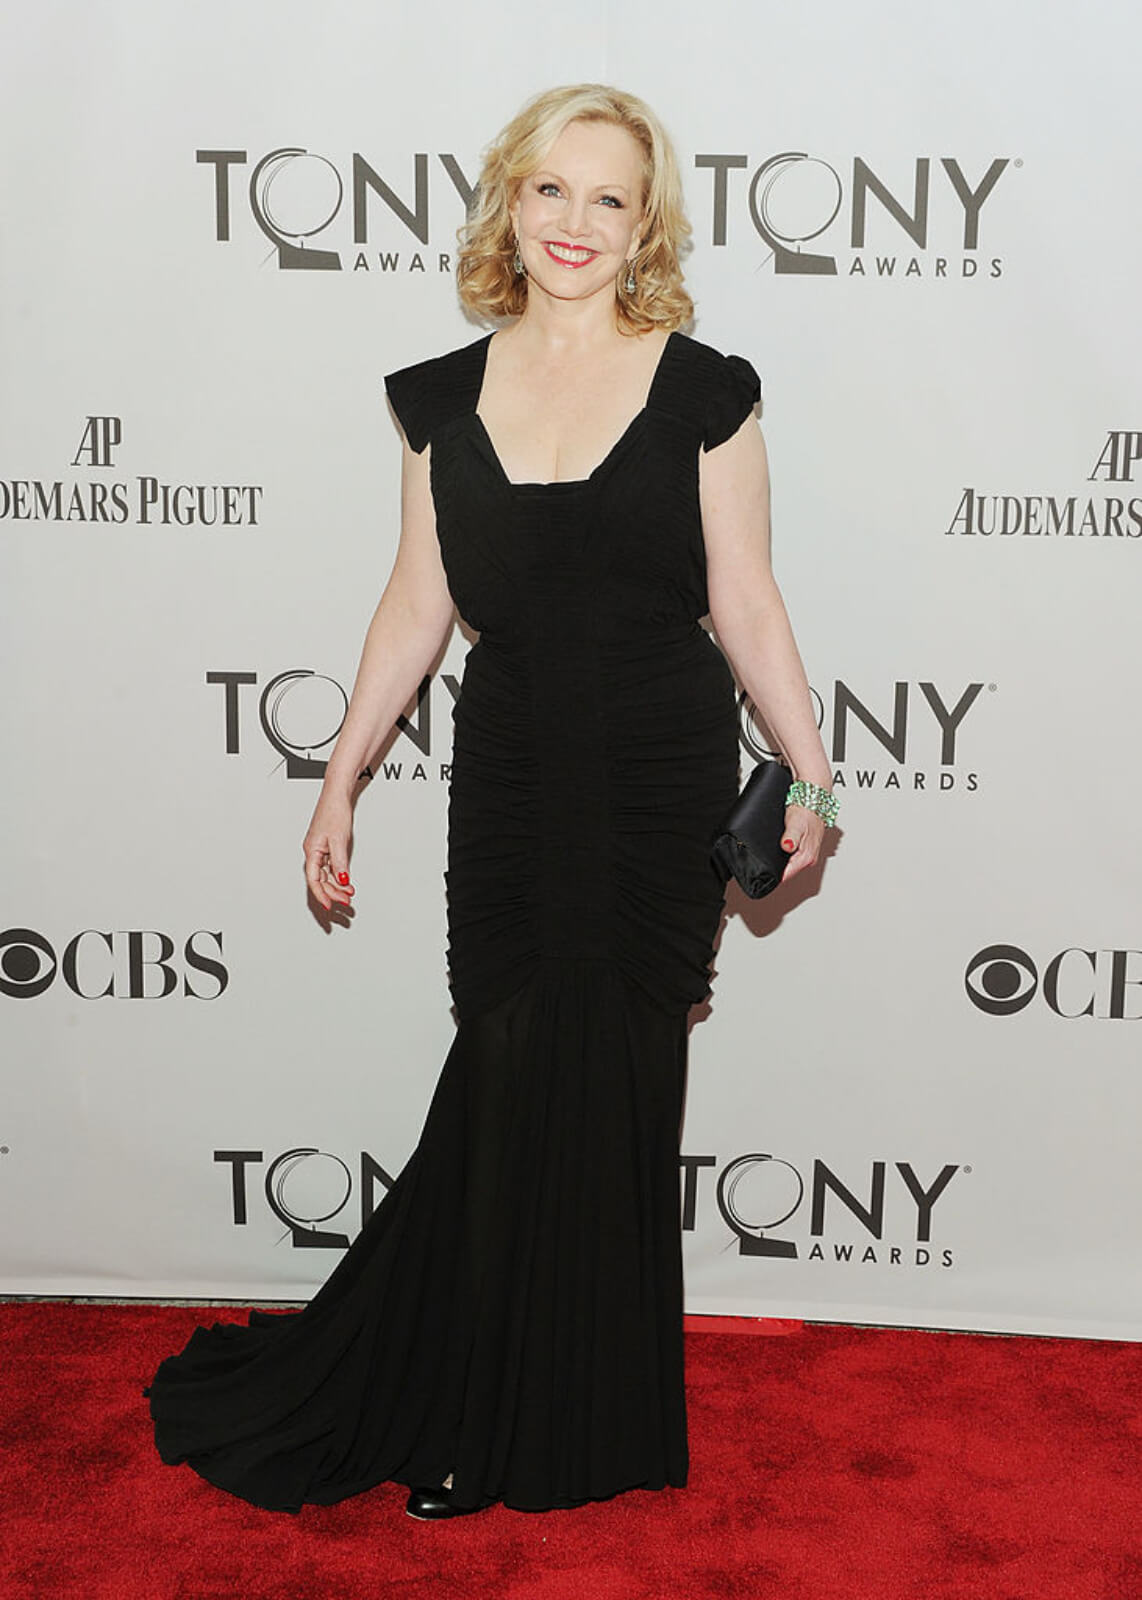 Portrait of Susan Stroman on the red carpet at the Tony Awards in a black dress, smiling with a clutch in her left hand.